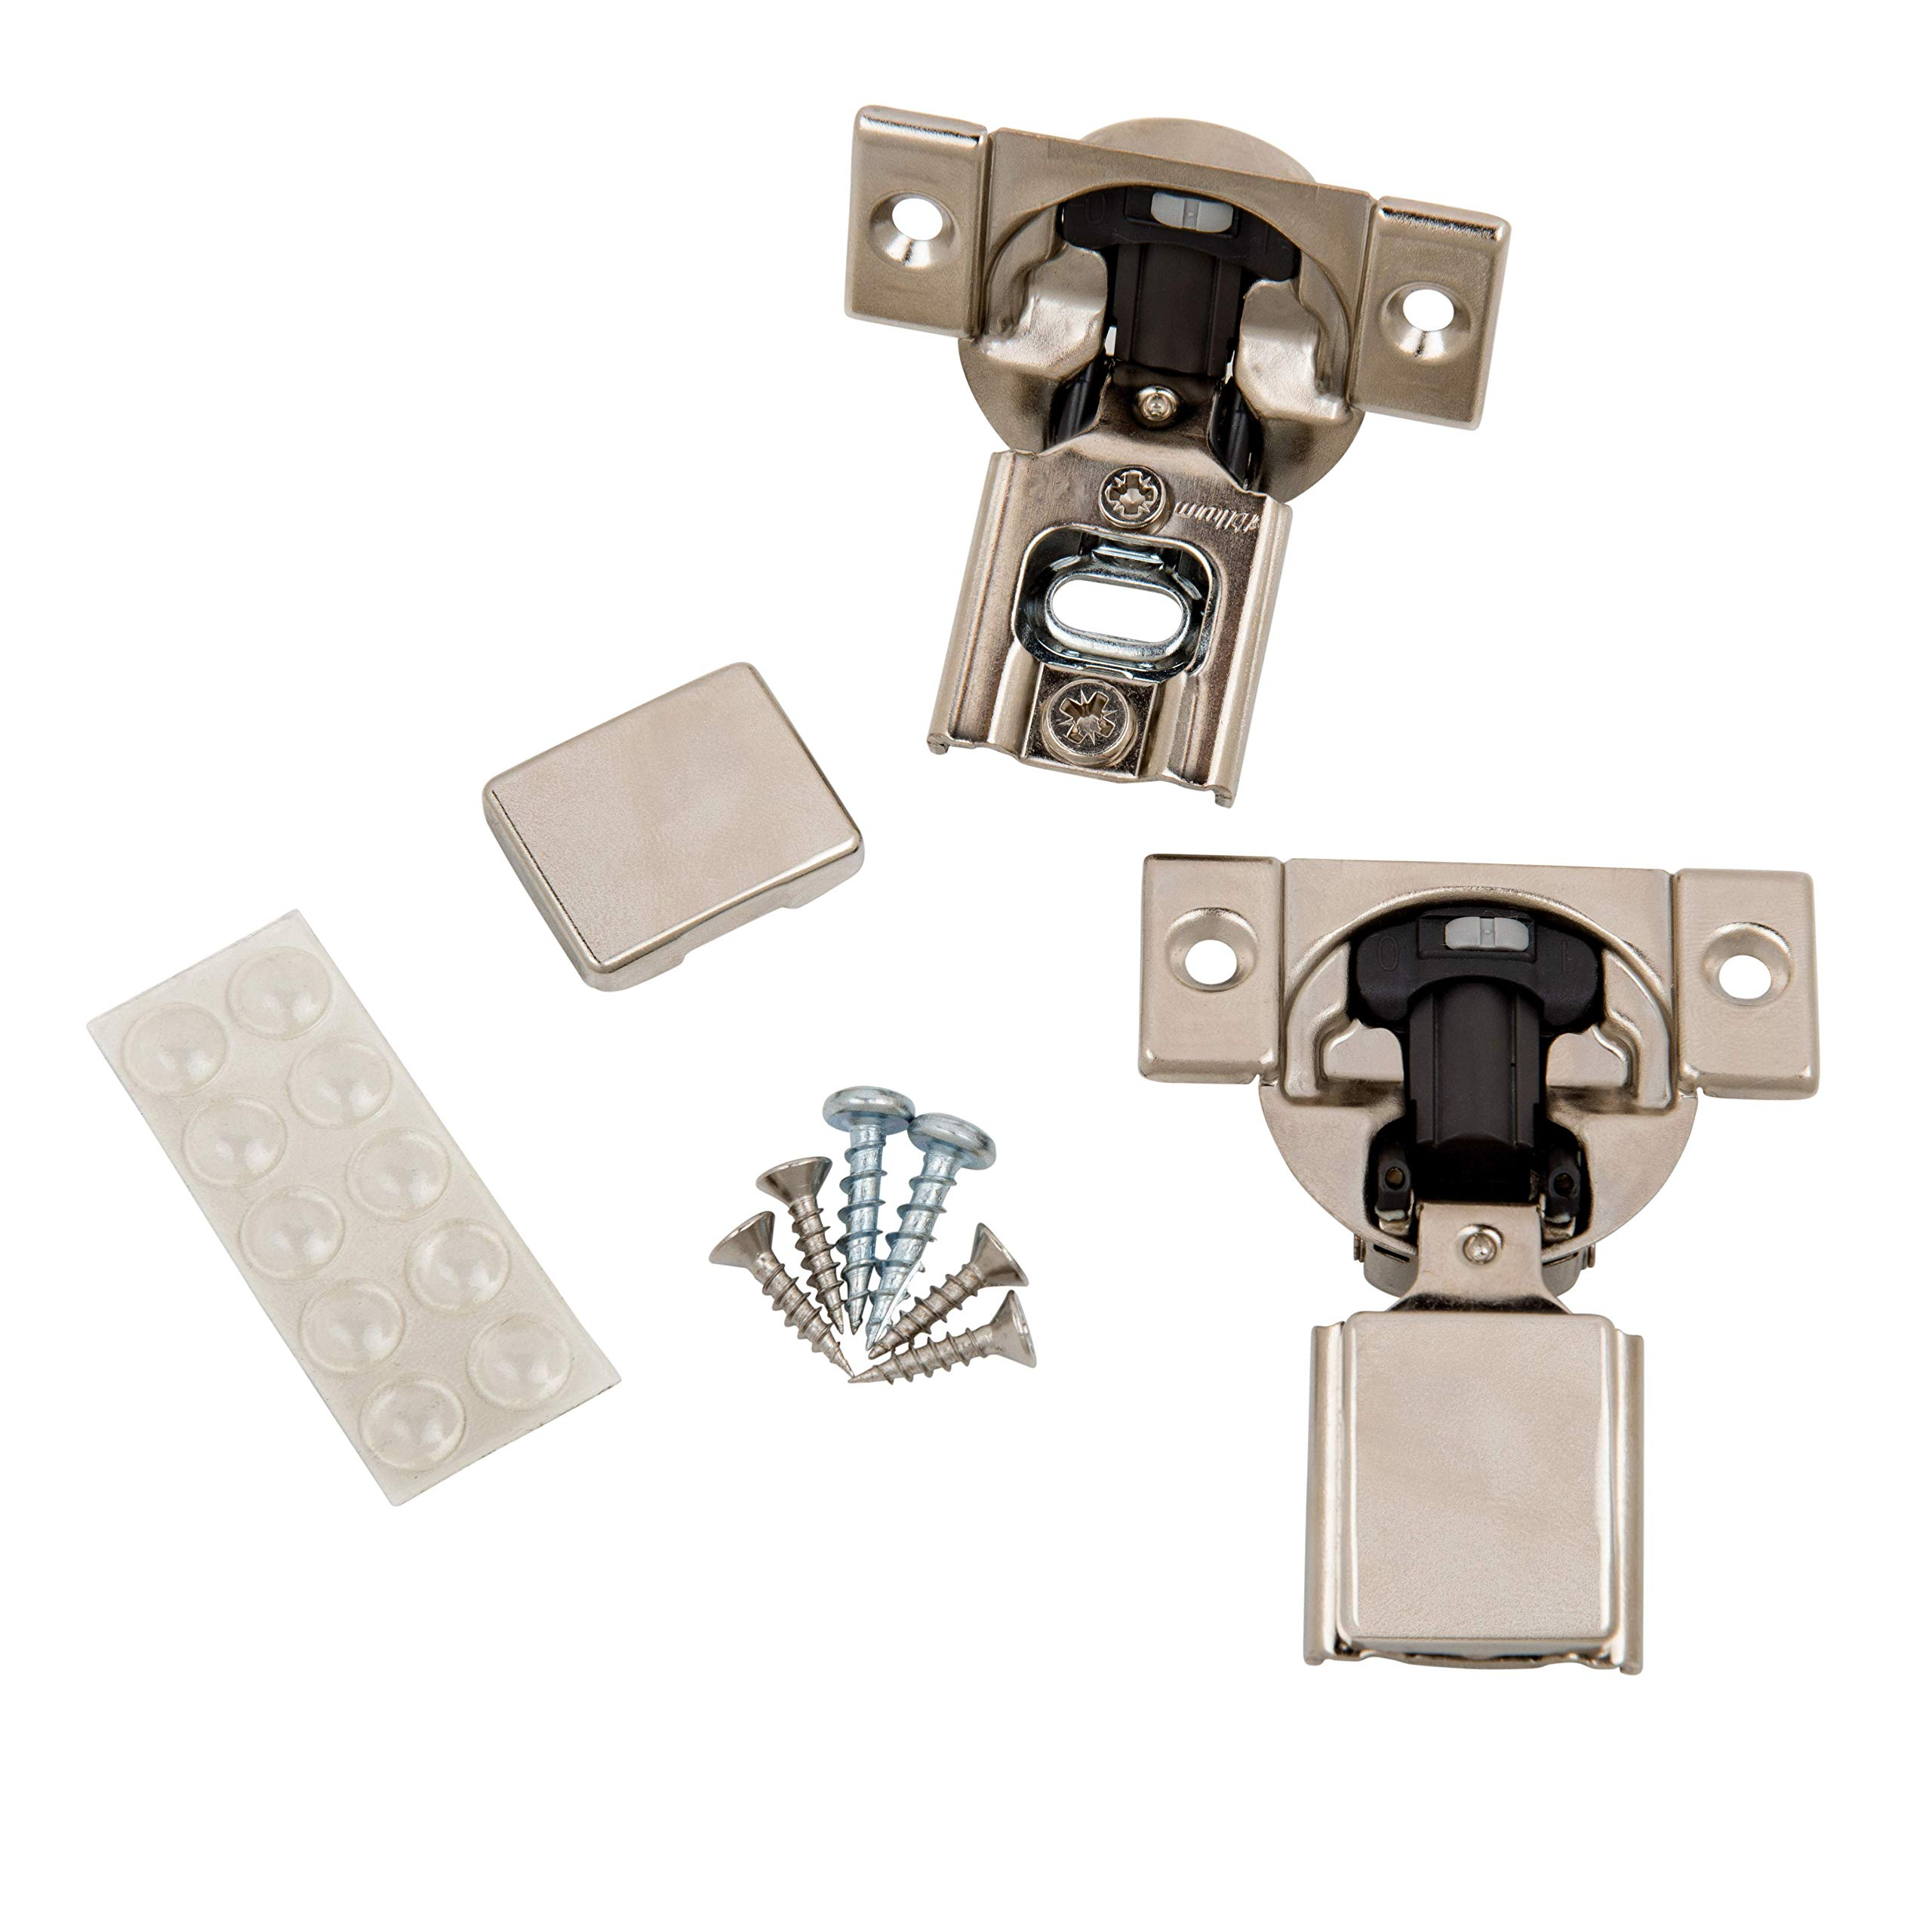 Blum (10 Pack) 3/4'' Overlay Soft Close Hinge 38N355B.12 105° Blumotion with Screws, Cover Caps, ProCabinetBumpers Bumpers